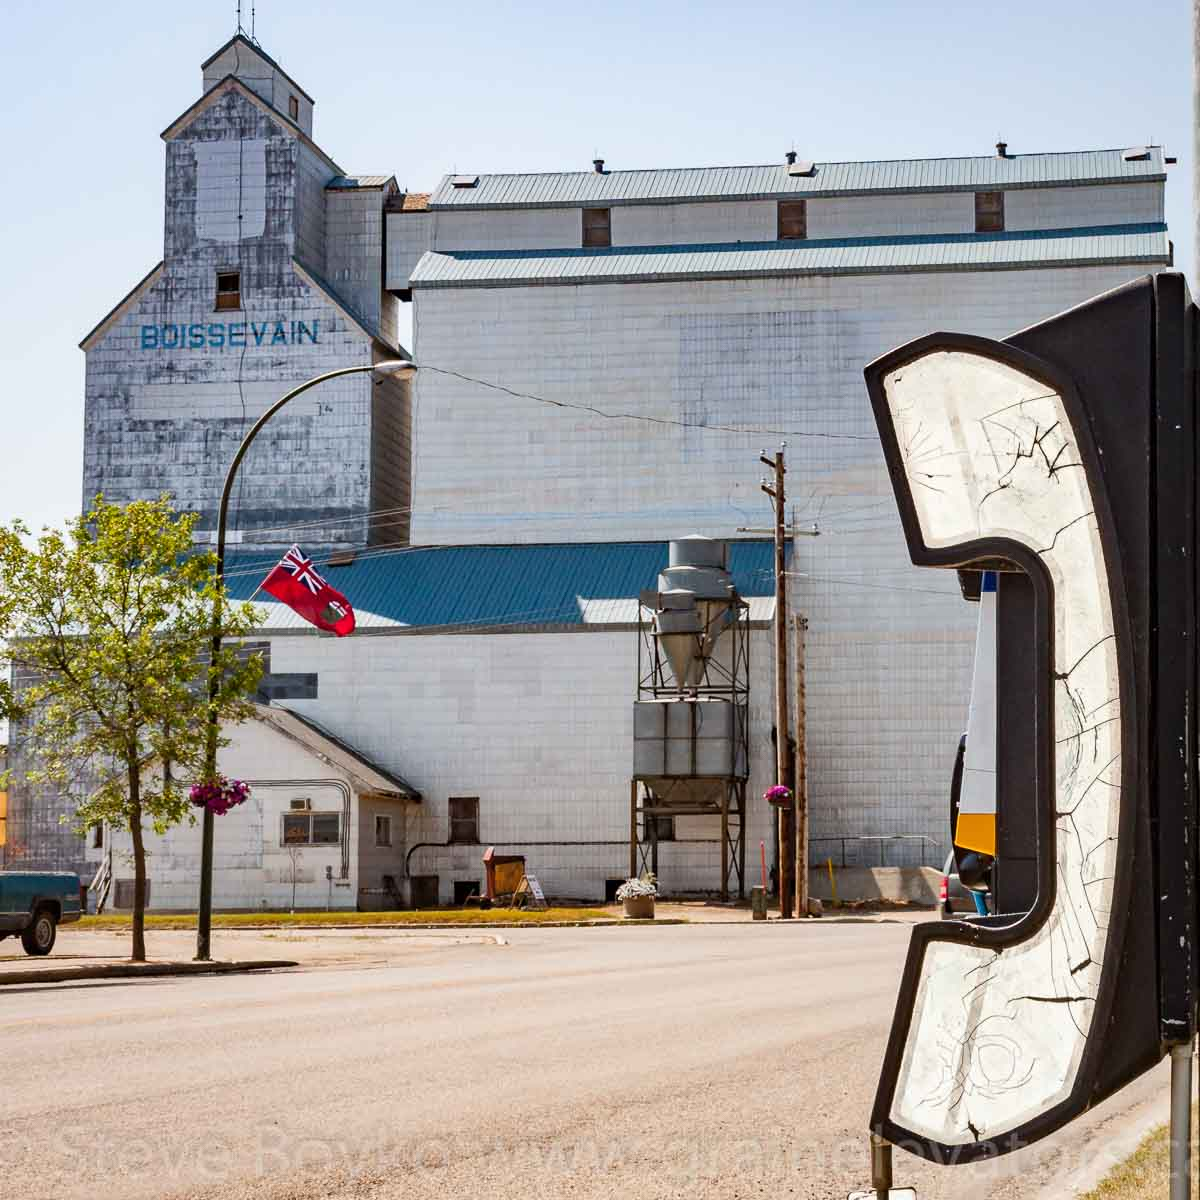 Telephone and ex UGG grain elevator, Boissevain, MB. Aug 2014. Contributed by Steve Boyko.